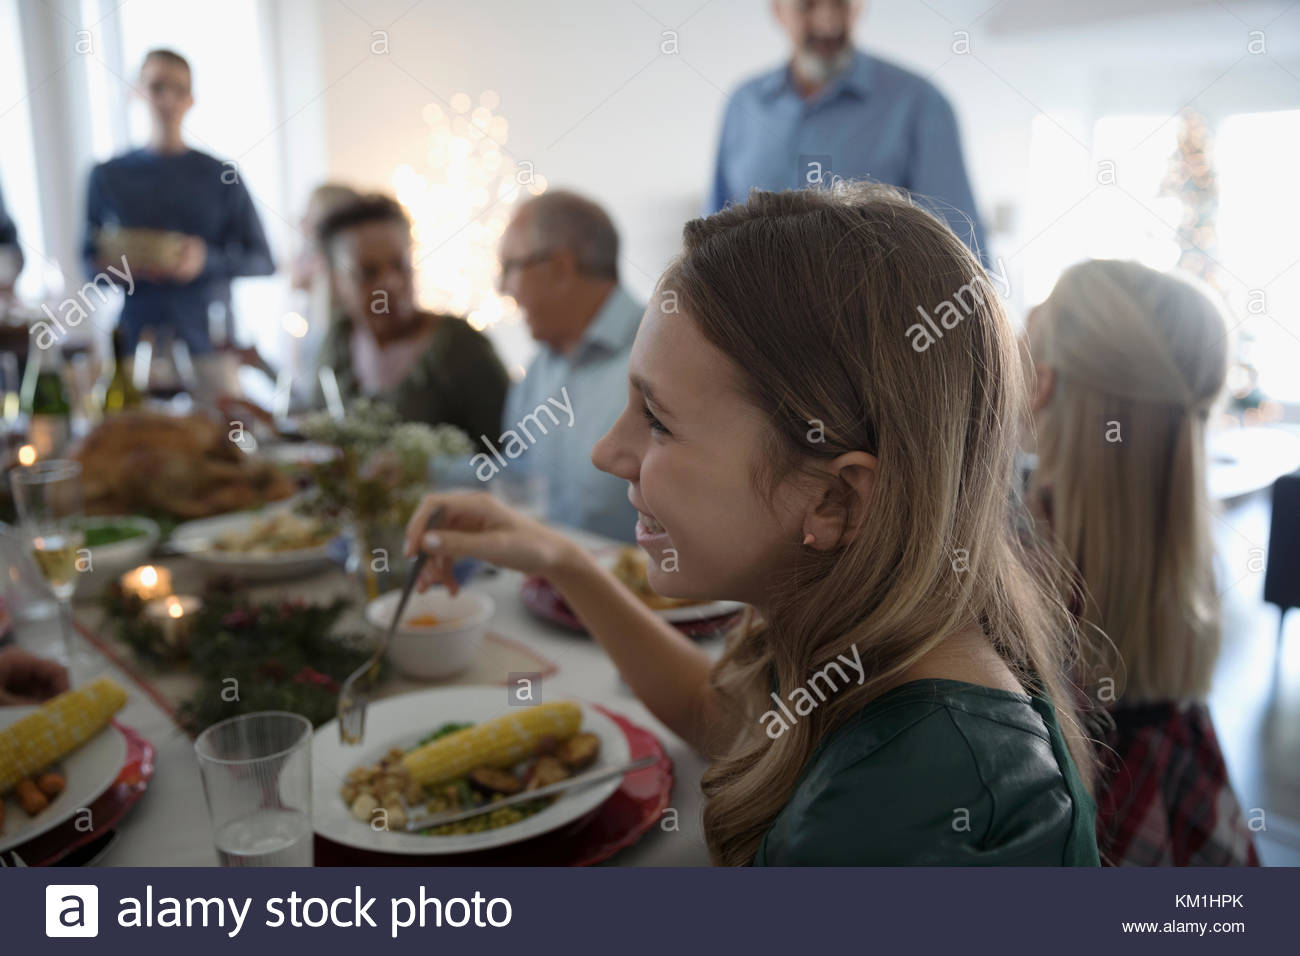 Smiling girl enjoying family Christmas dinner at table - Stock Image